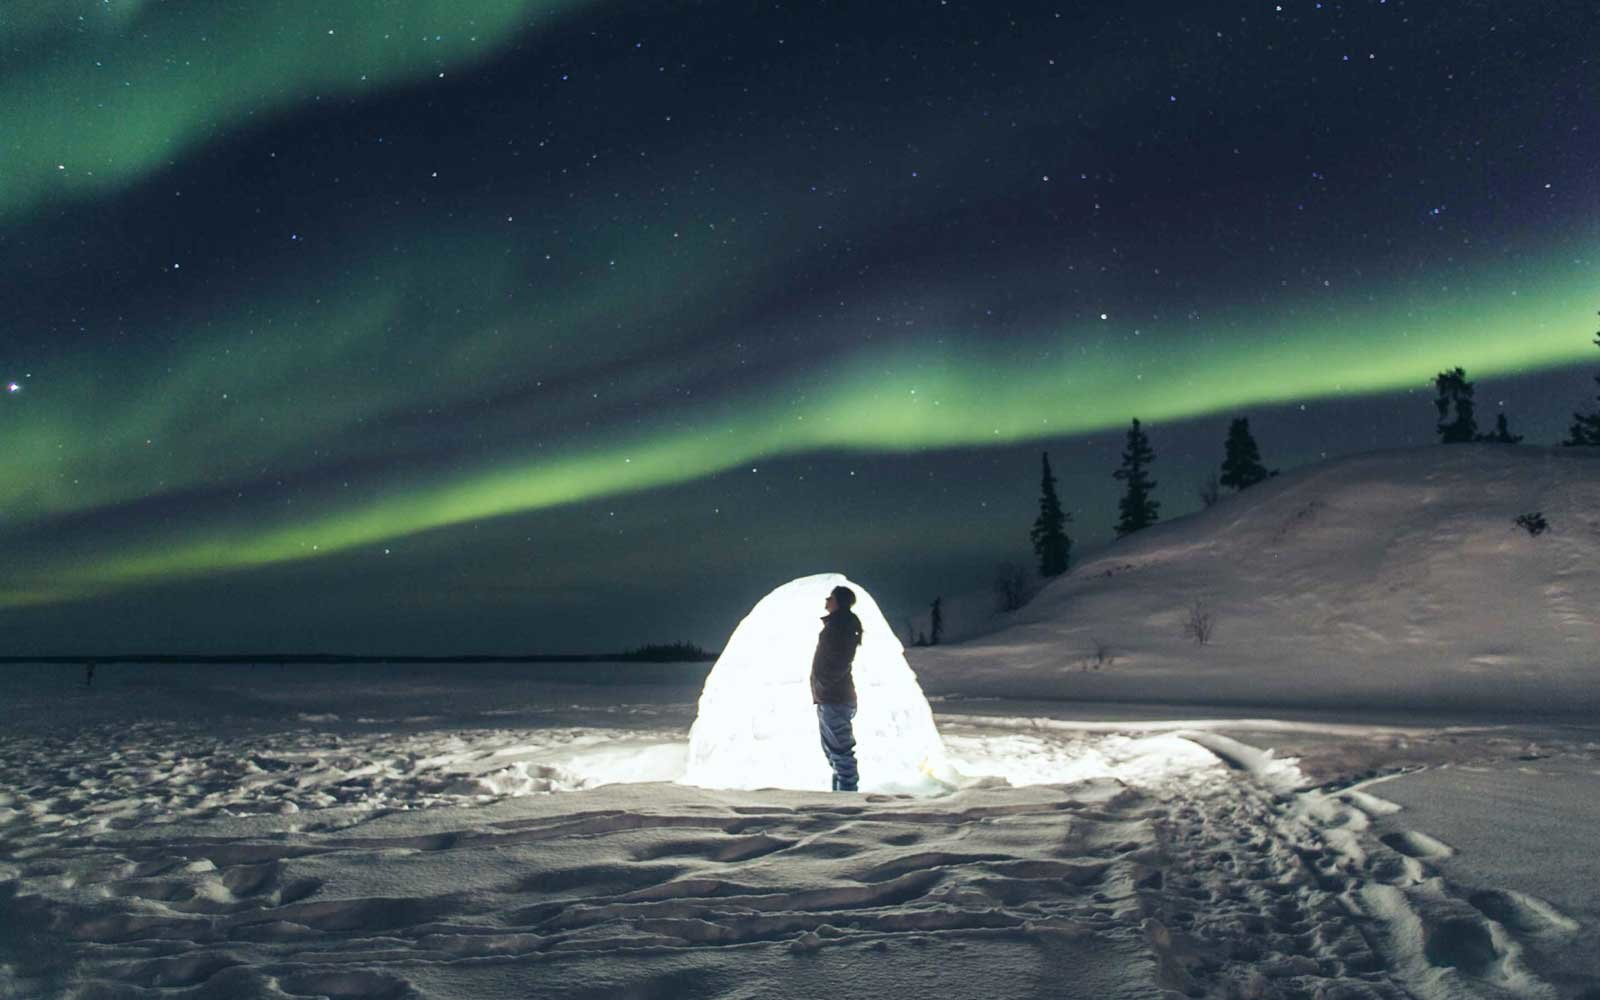 Igloo and northern lights in Yellowknife, Canada